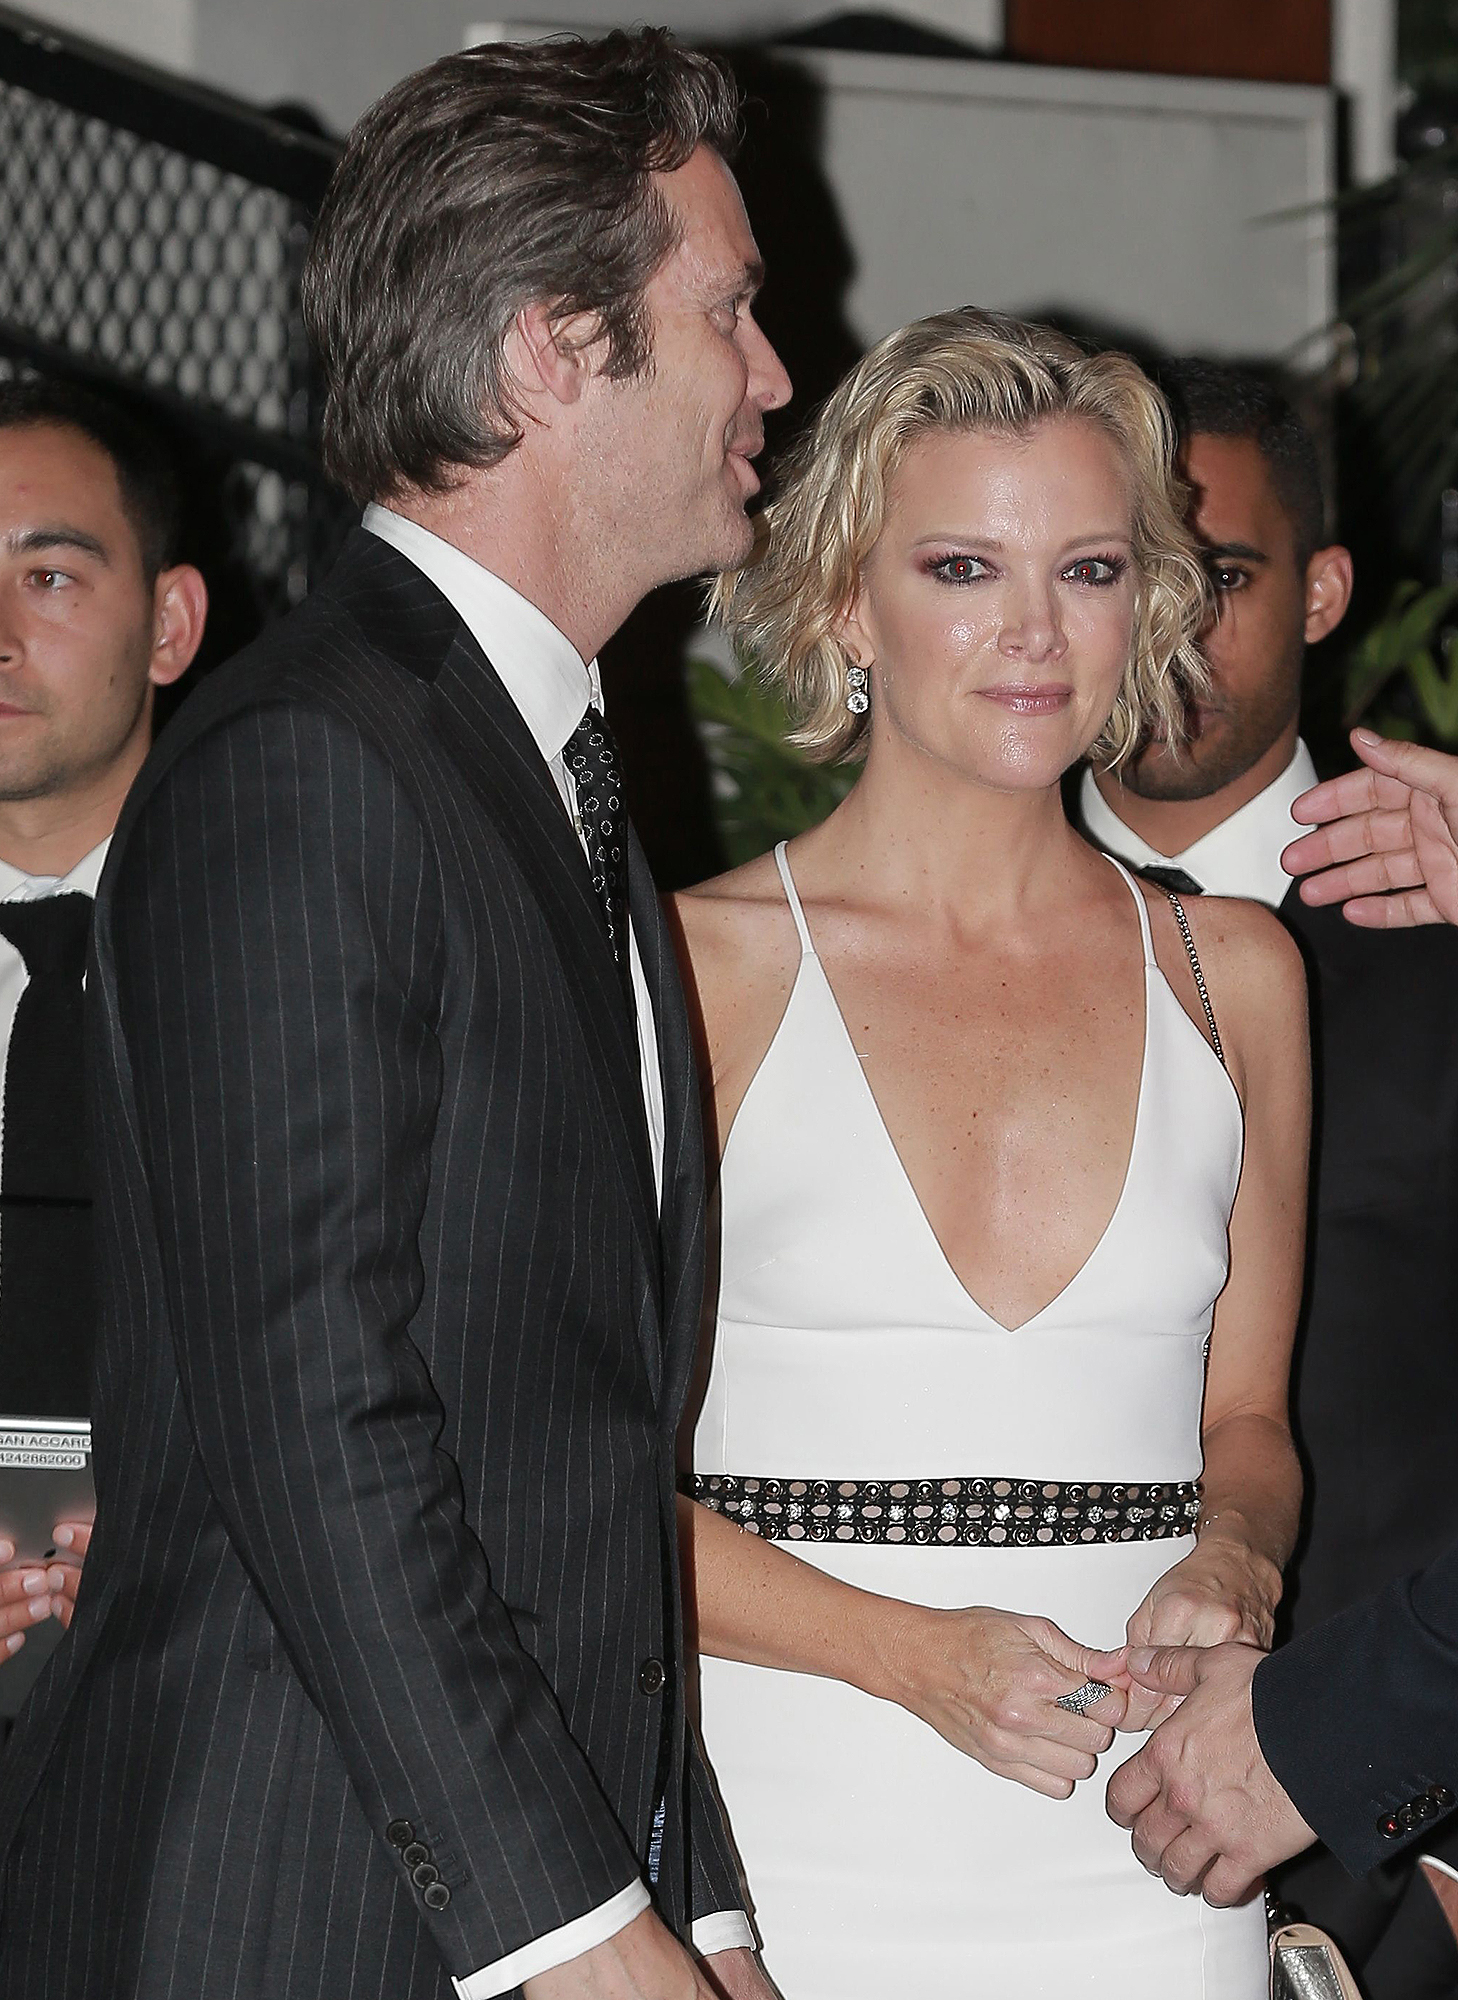 Hollywood, CA - Megyn Kelly at the CAA Golden Globes After Party, held at the Sunset Towers. AKM-GSI January 8, 2017 To License These Photos, Please Contact : Maria Buda (917) 242-1505 mbuda@akmgsi.com sales@akmgsi.com or Mark Satter (317) 691-9592 msatter@akmgsi.com sales@akmgsi.com www.akmgsi.com